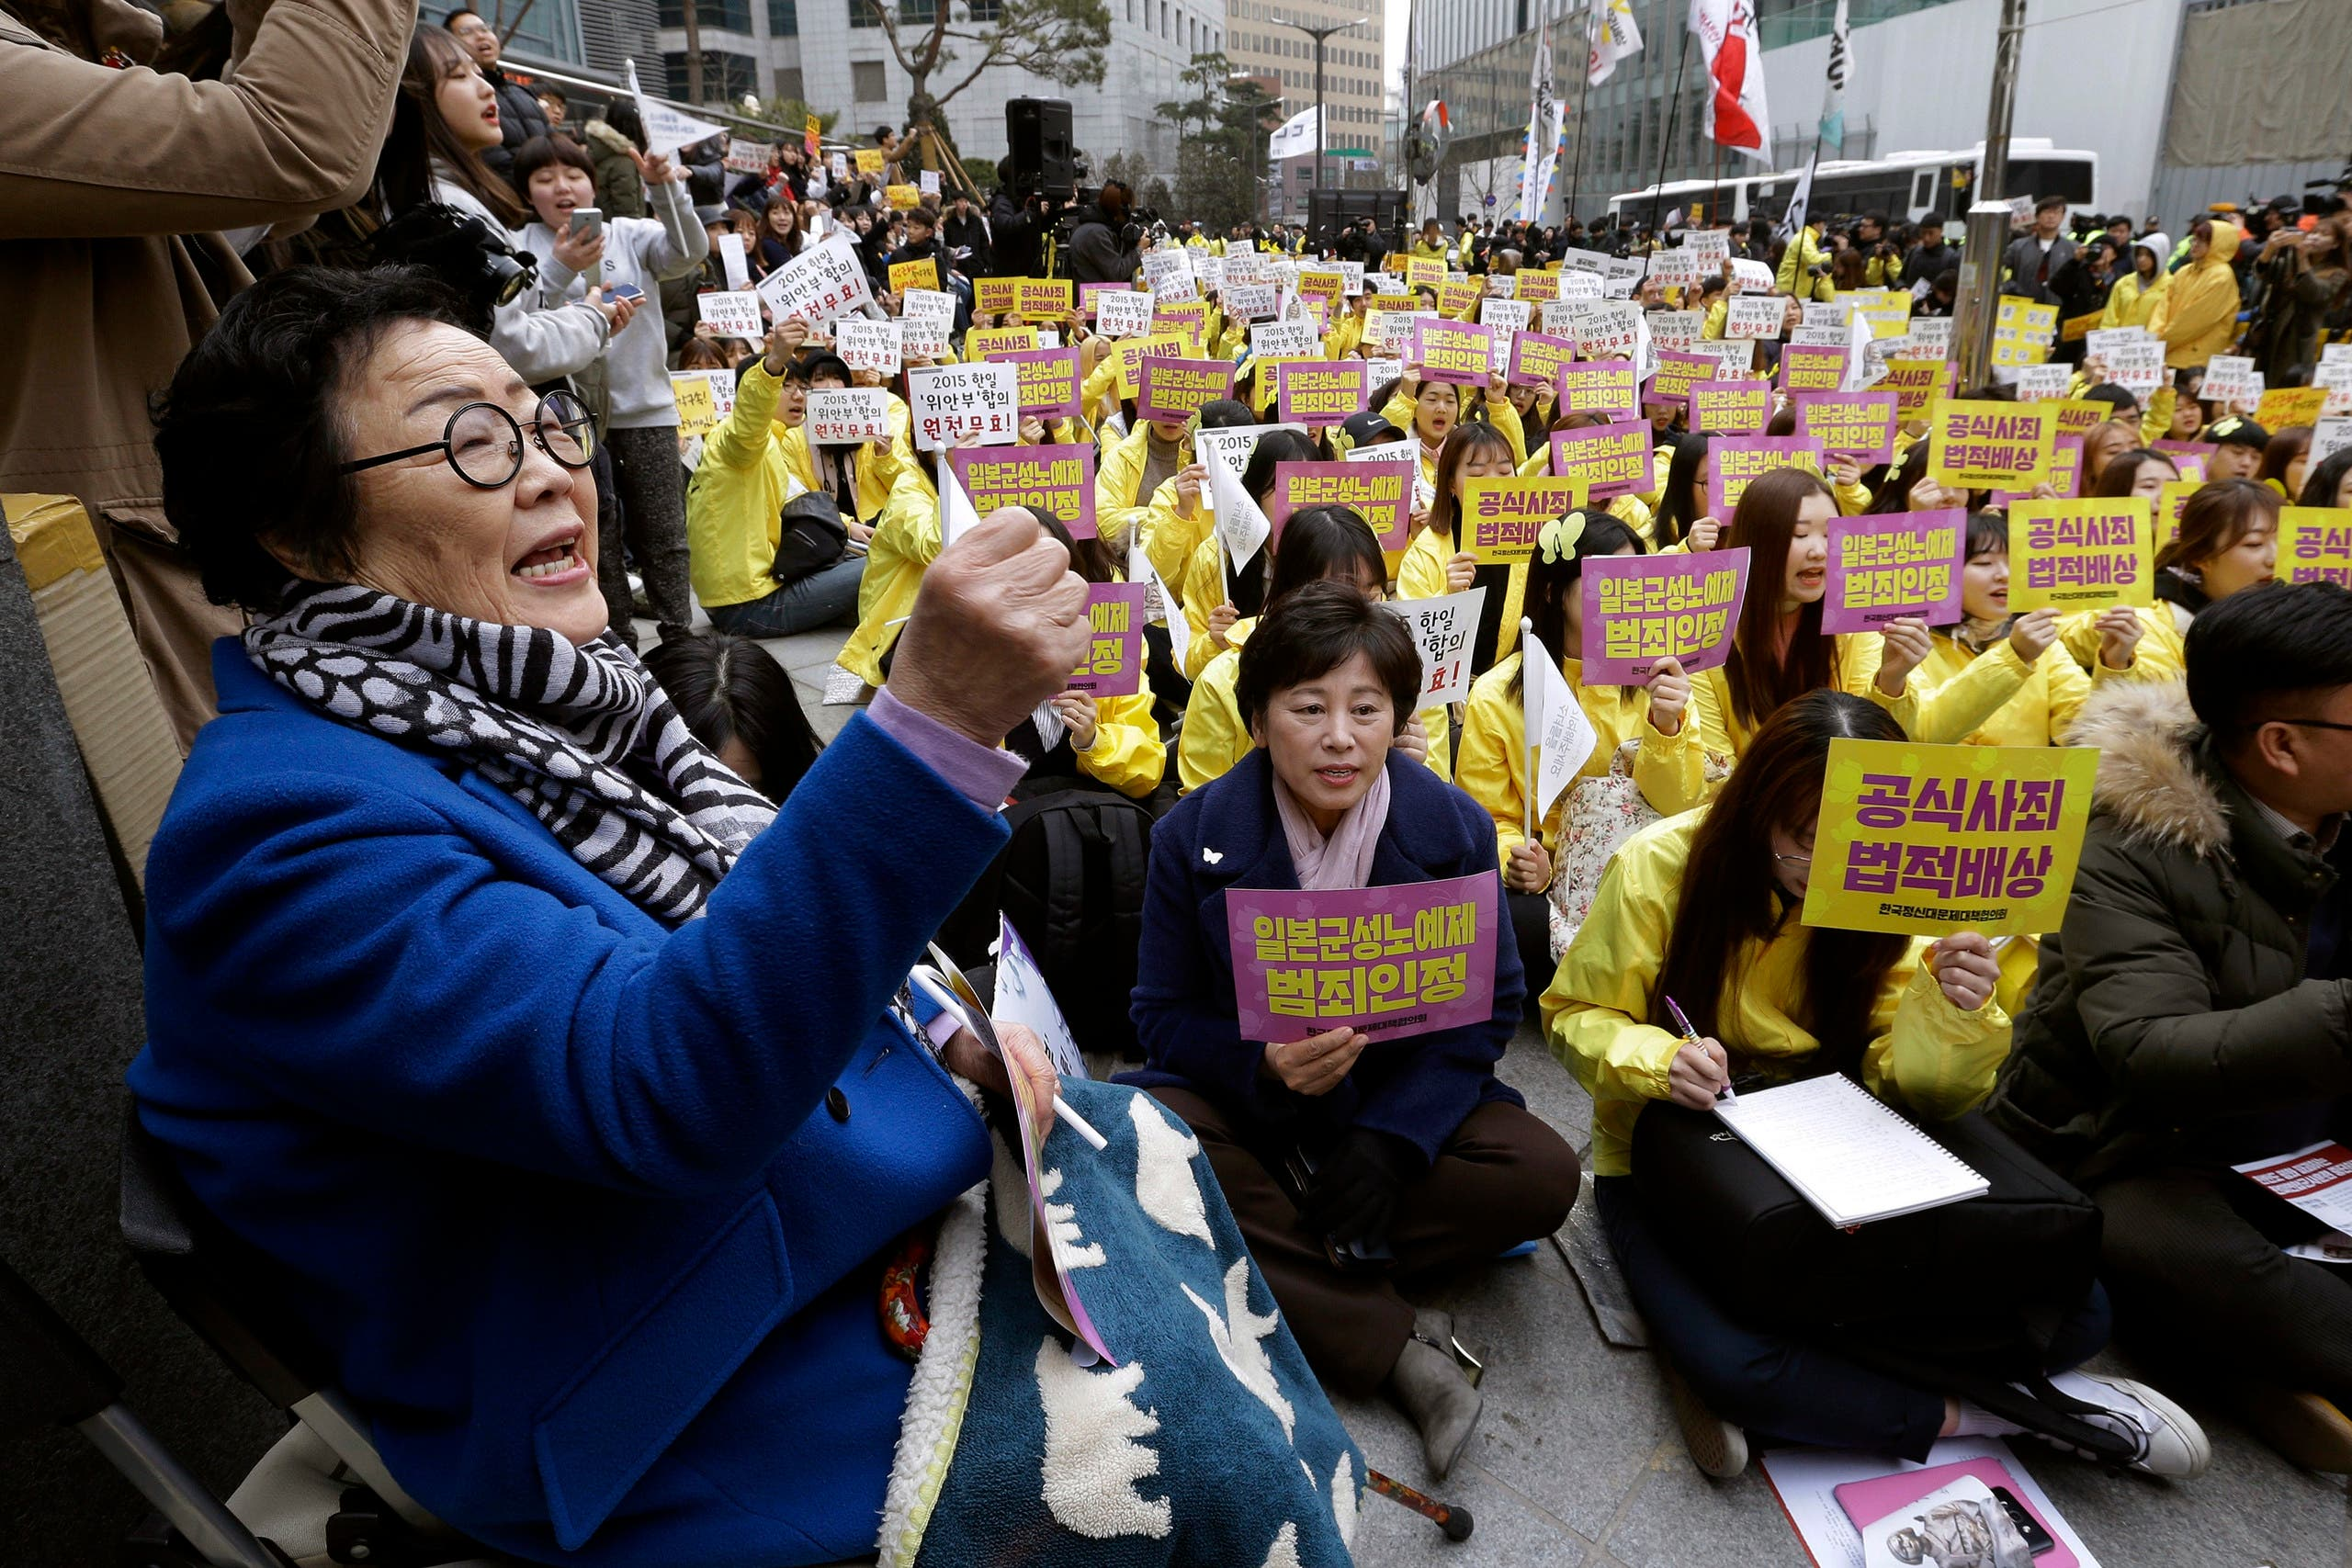 In this March 1, 2017, file photo, former comfort woman Lee Yong-soo, left, who was forced to serve for the Japanese troops as a sex slave during World War II, shouts slogans during a rally to mark the March First Independence Movement Day, the anniversary of the 1919 uprising against Japanese colonial rule, near the Japanese Embassy in Seoul, South Korea. (File photo: AP)